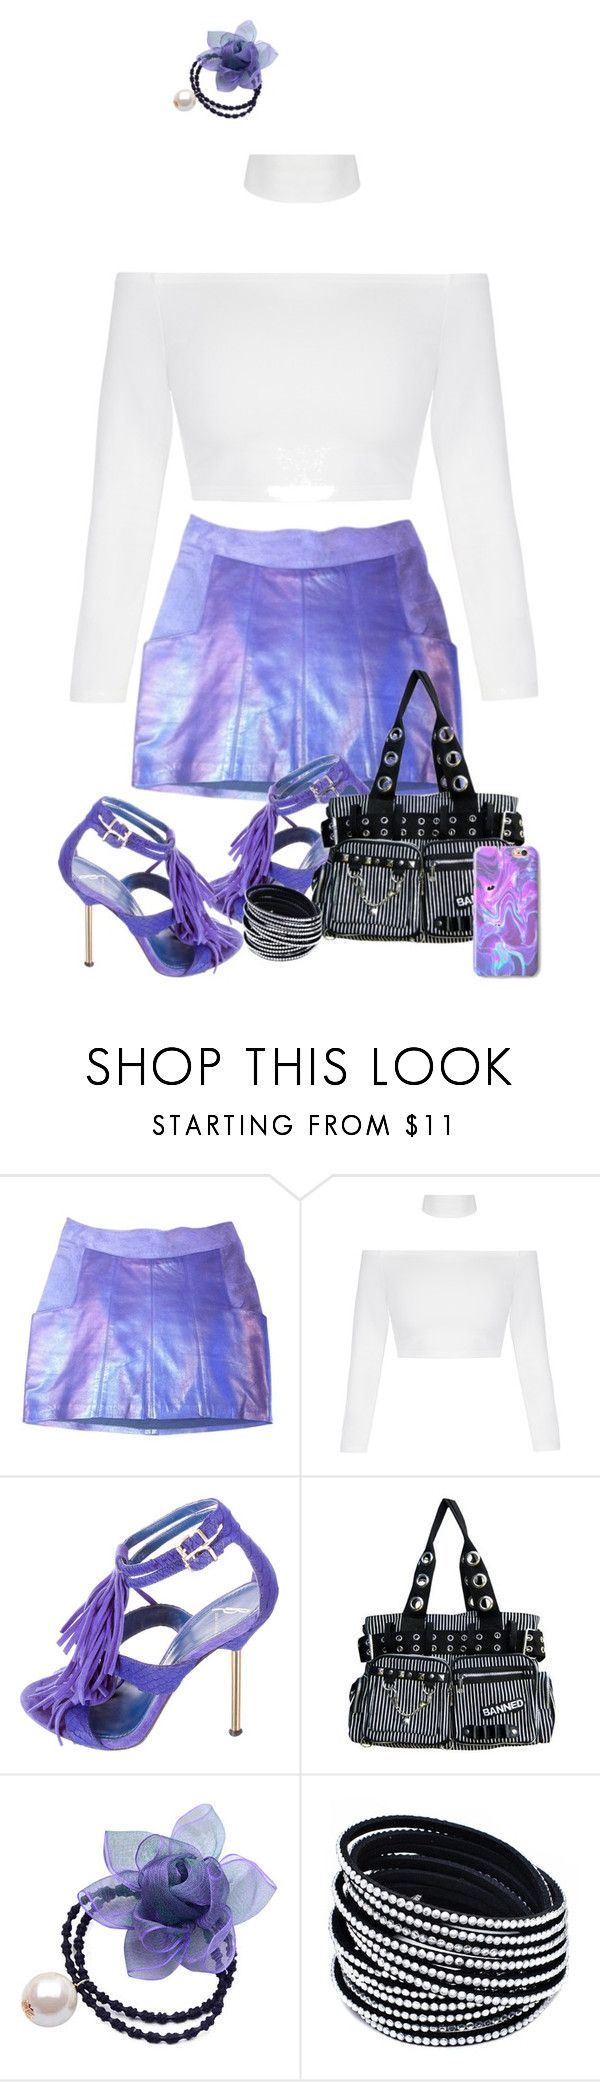 """""""Periwinkle Heels"""" by polishdiva1 ❤ liked on Polyvore featuring Eple & Melk, B Brian Atwood and Chicnova Fashion"""